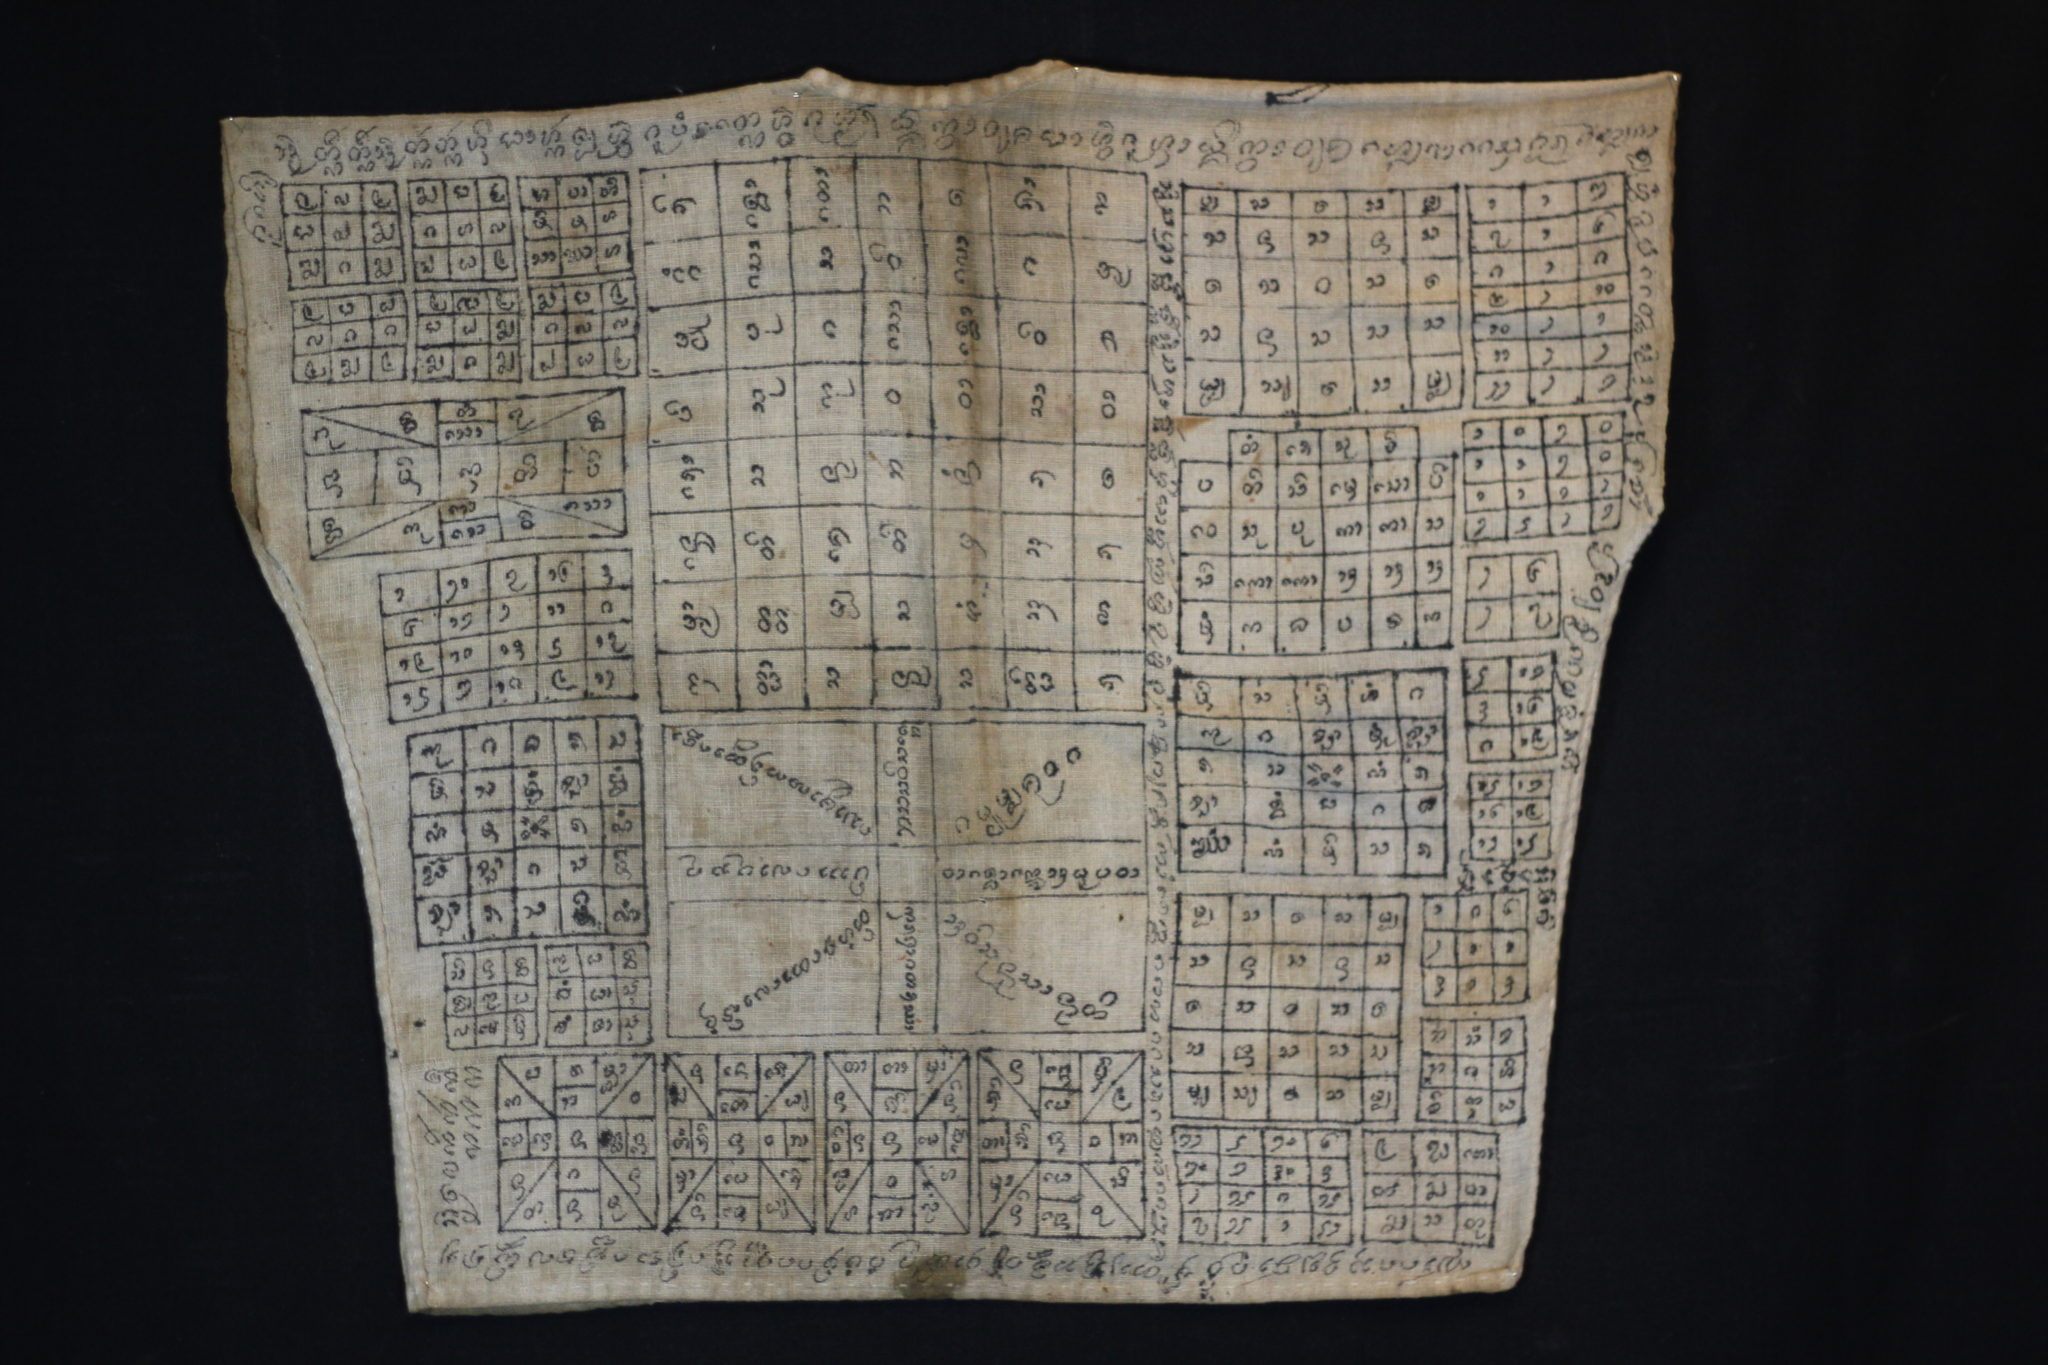 "Amulet Yantra Vest Nong Pho, Thailand Vietnamese shaman Mid to late 19th c. Cotton, pigment Handmade and drawn by the shaman It is endowed with prayers, signs, numbers and a depiction of the great guru monk Luang Phor Doem. The sacred cloth is an undergarment worn as a talisman with great protective power against physical harm, like bullets, spears, knives, wild animals and evil spirits. 19"" x 22"" $2,900."